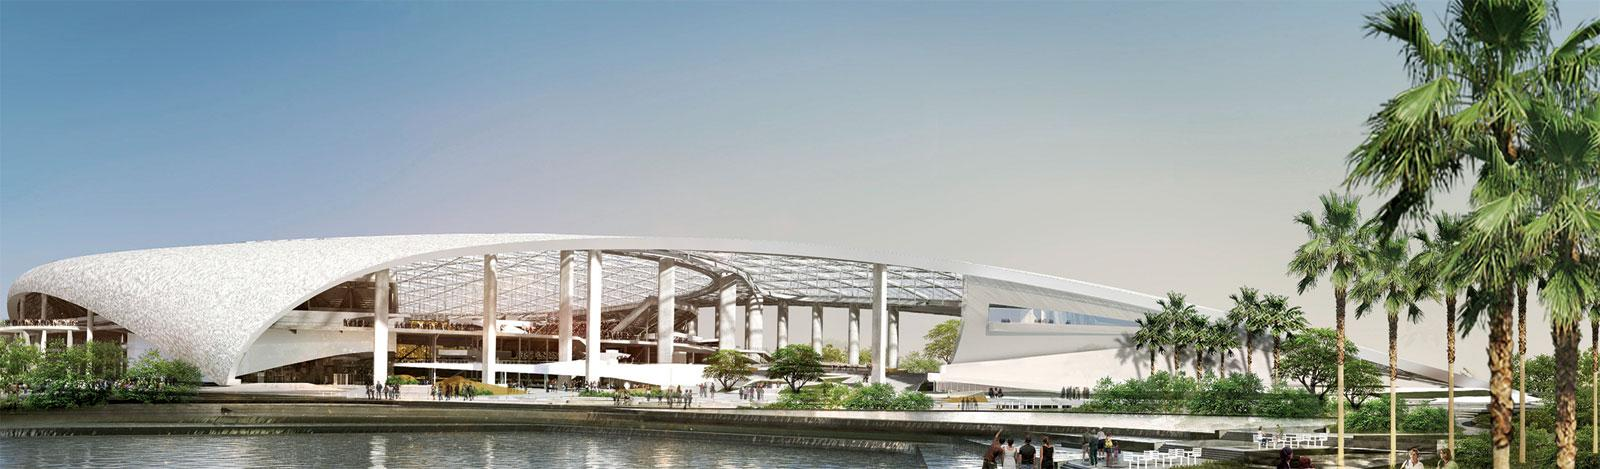 L.A. Stadium, opening in 2021 with a performance center, retail space and residences, will be like a city within a city.